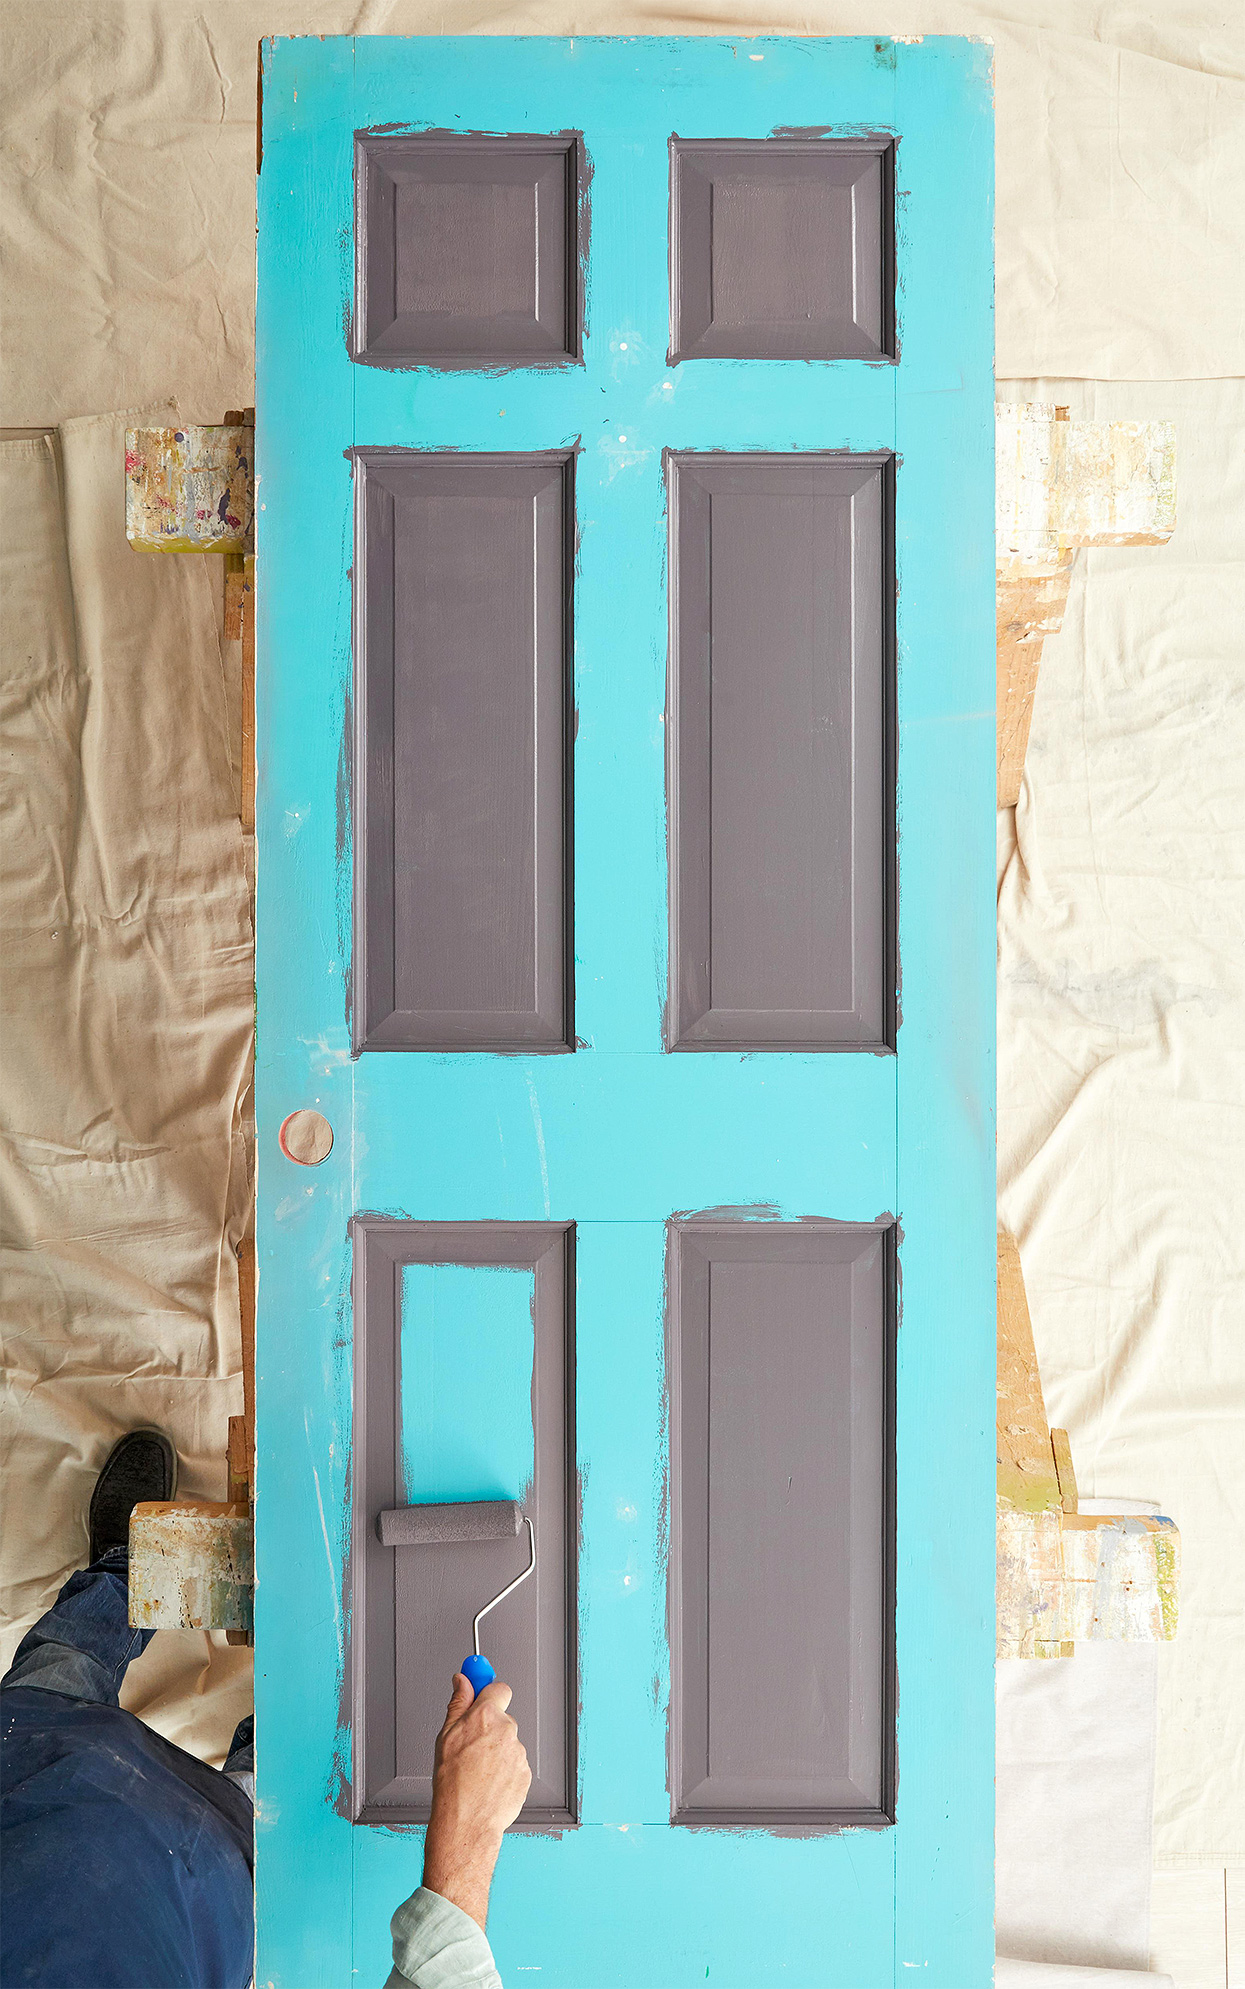 rolling paint onto beveled panels on door face